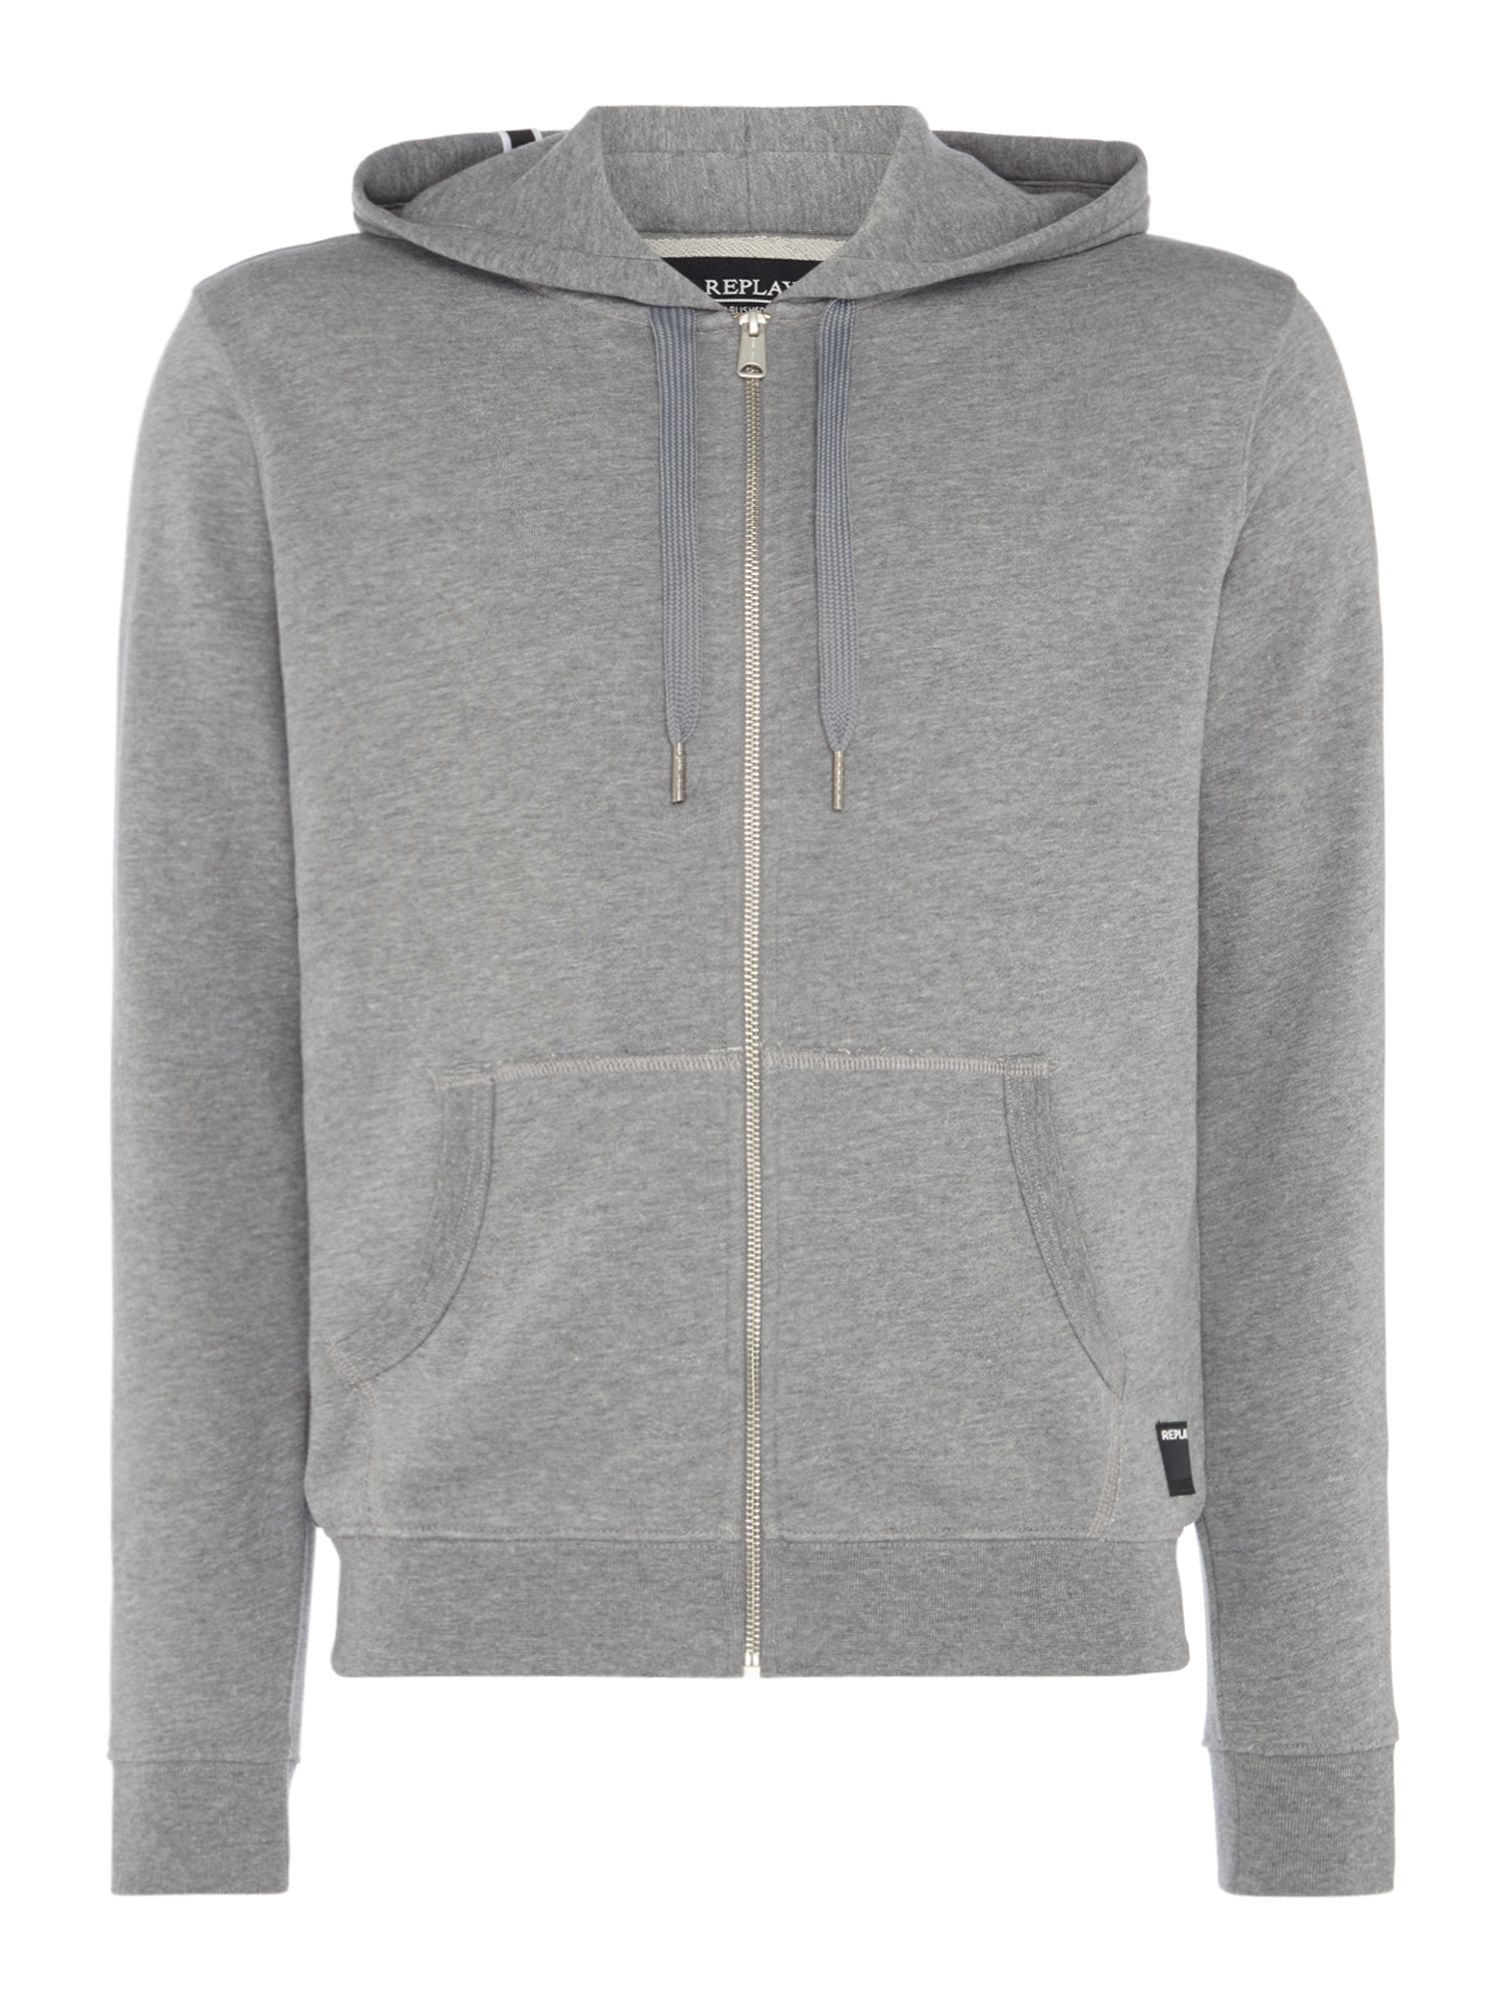 Men's Replay Cotton Fleece Hoodie, Grey